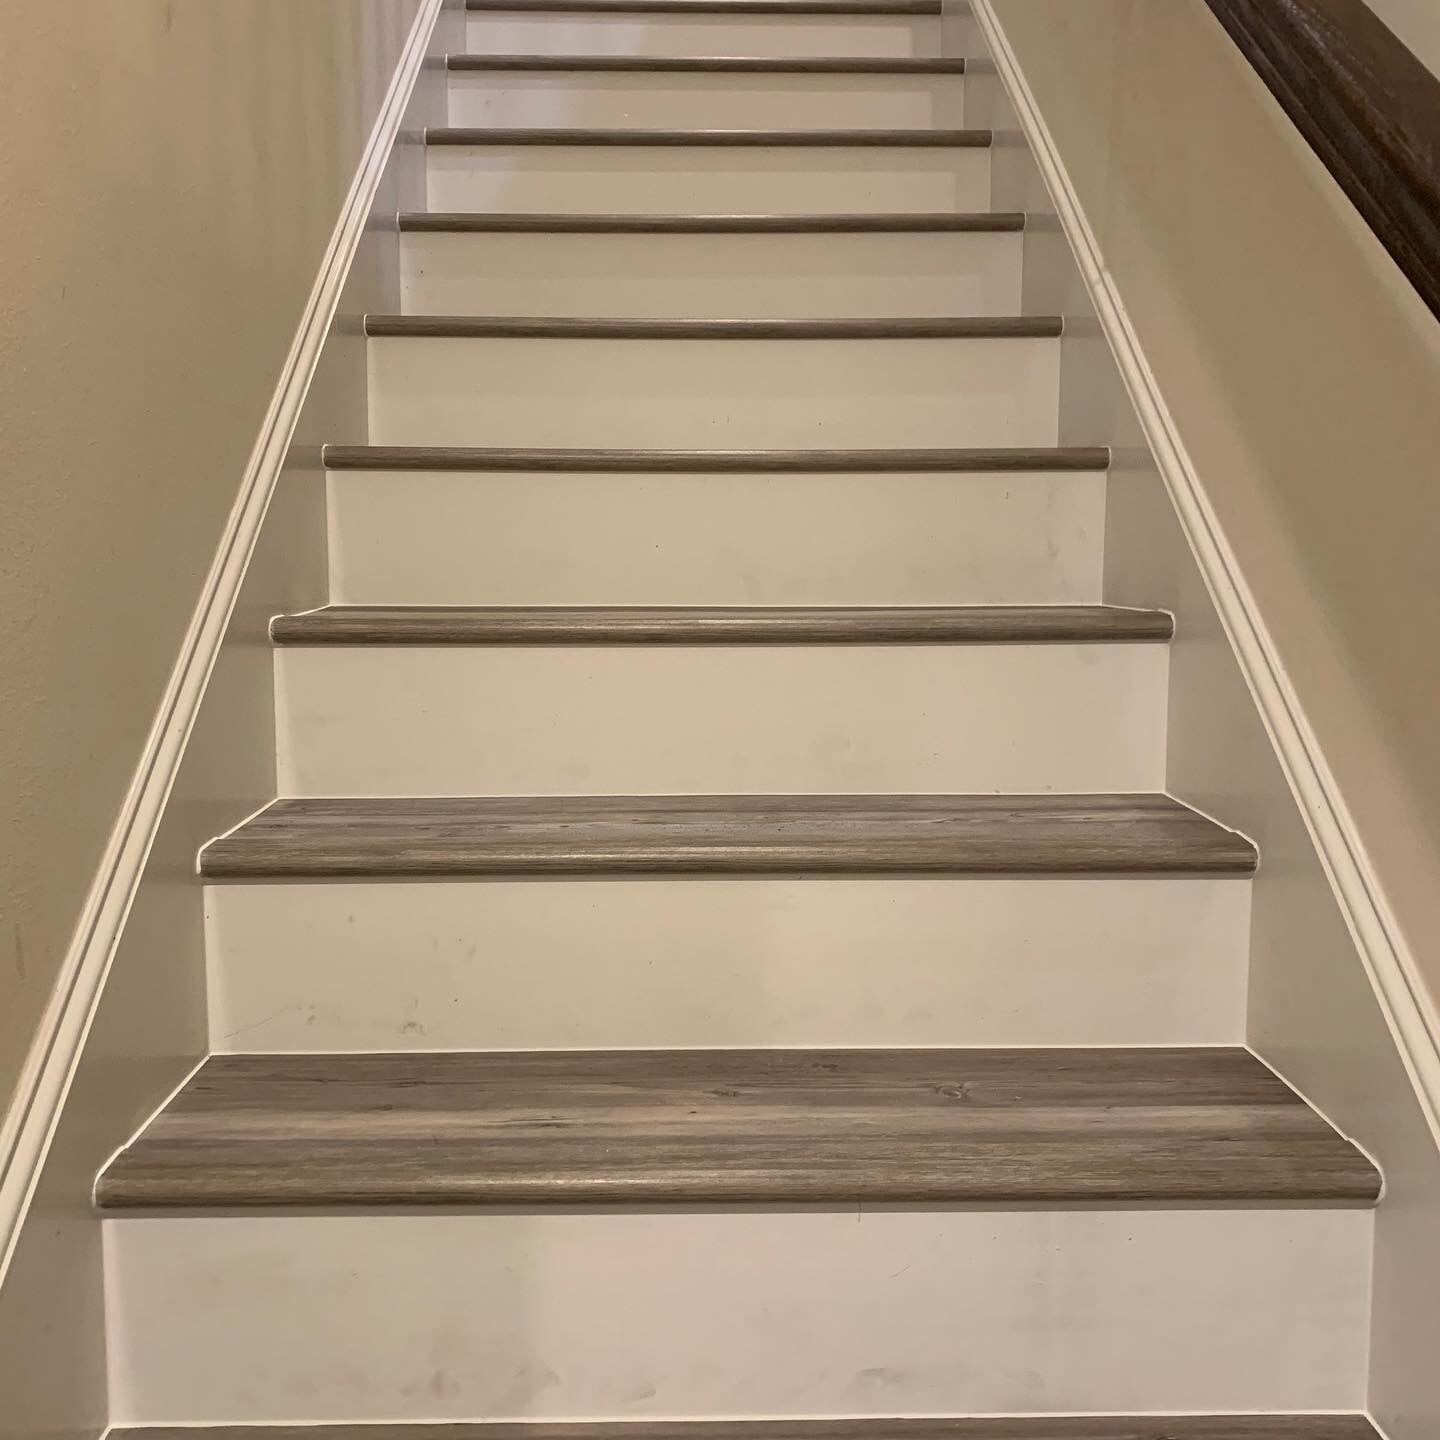 Hardwood stairs from Houston Floor Installation Services in Houston, TX